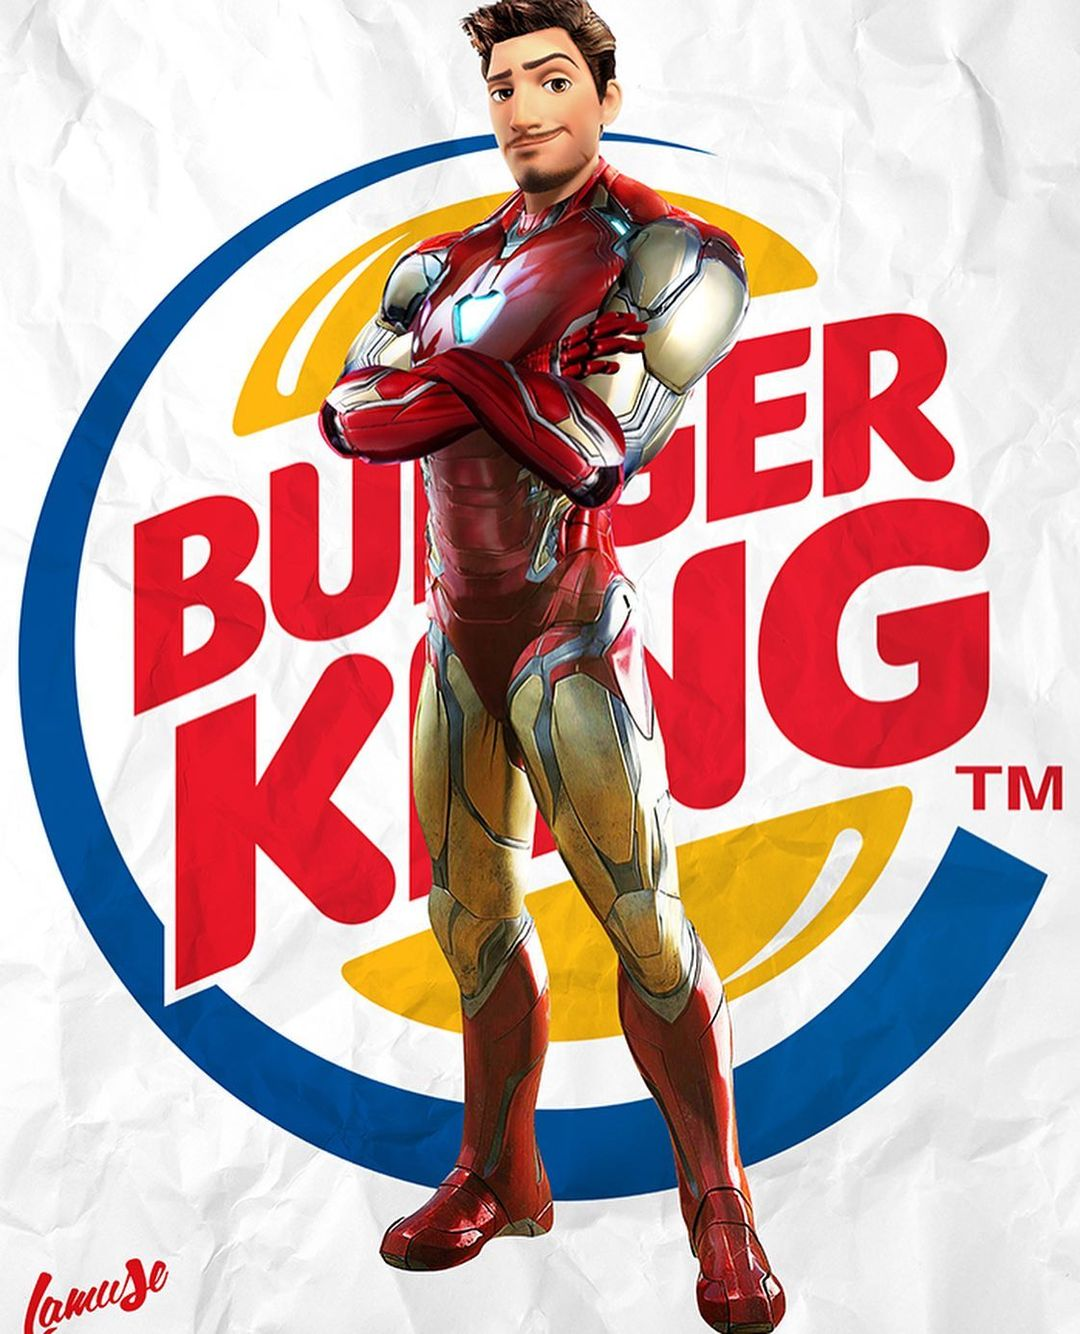 Disney characters reimagined as Marvel and DC icons 56